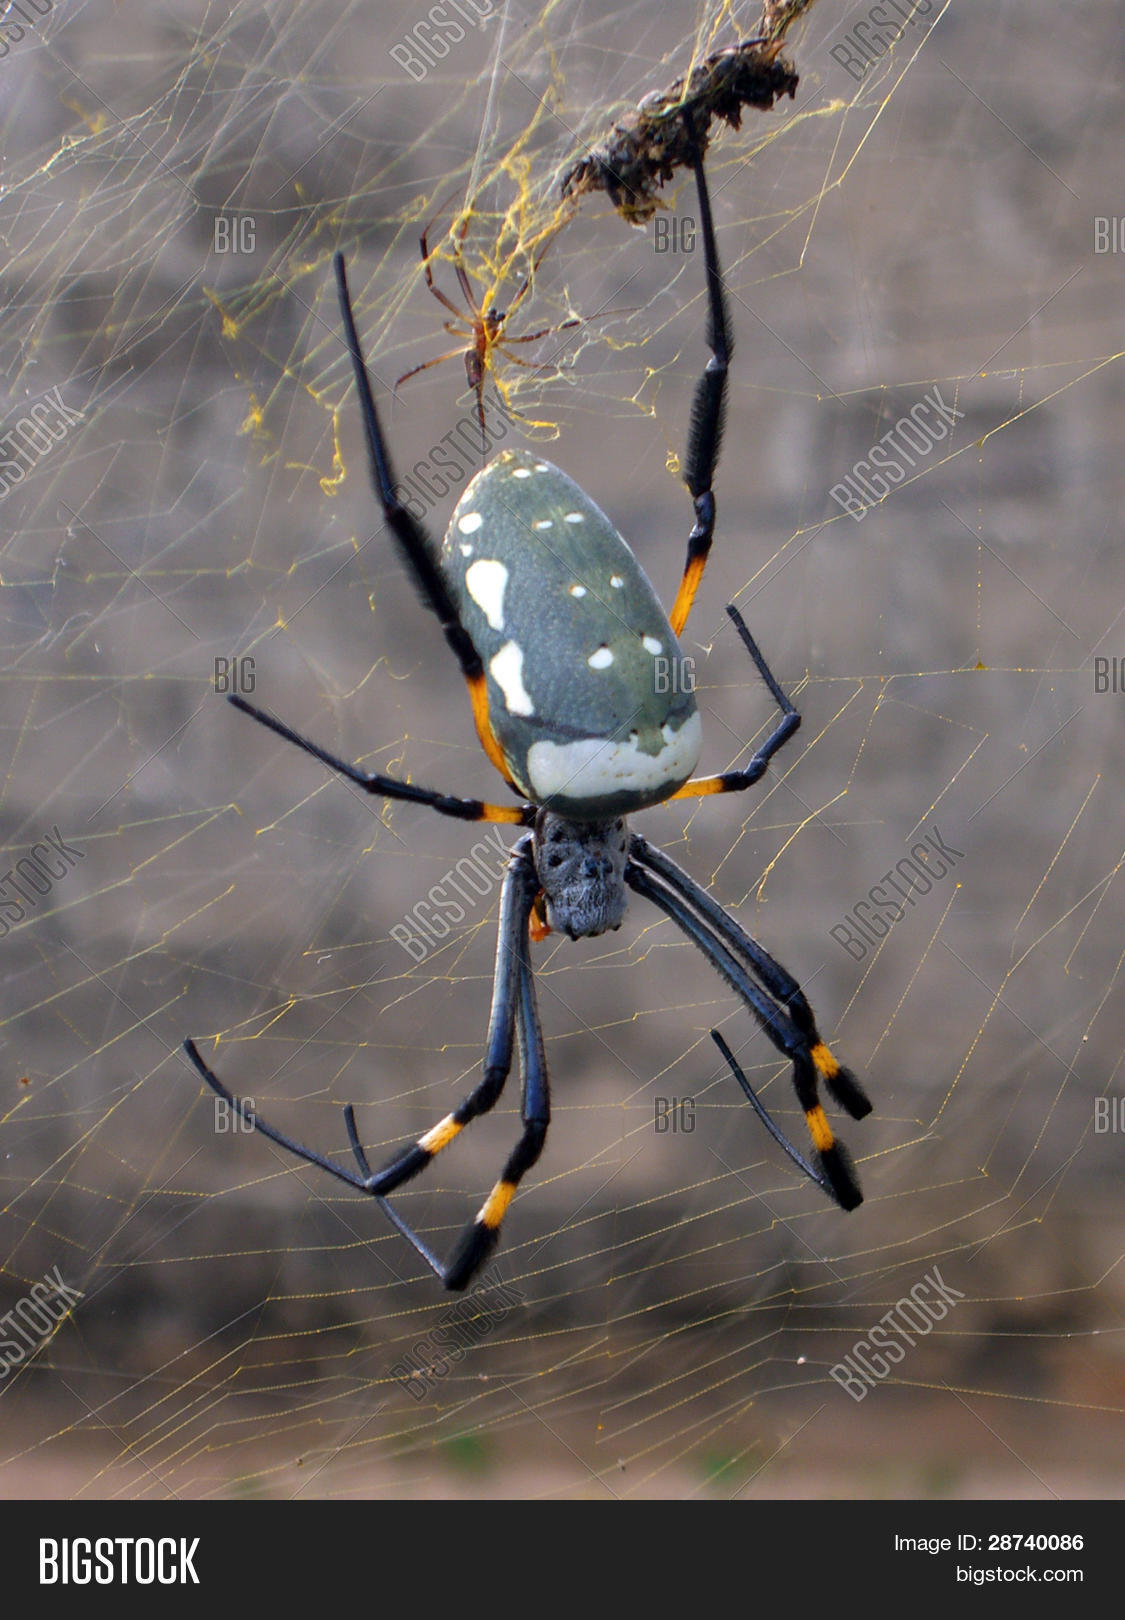 Giant African Spider Giant African S...